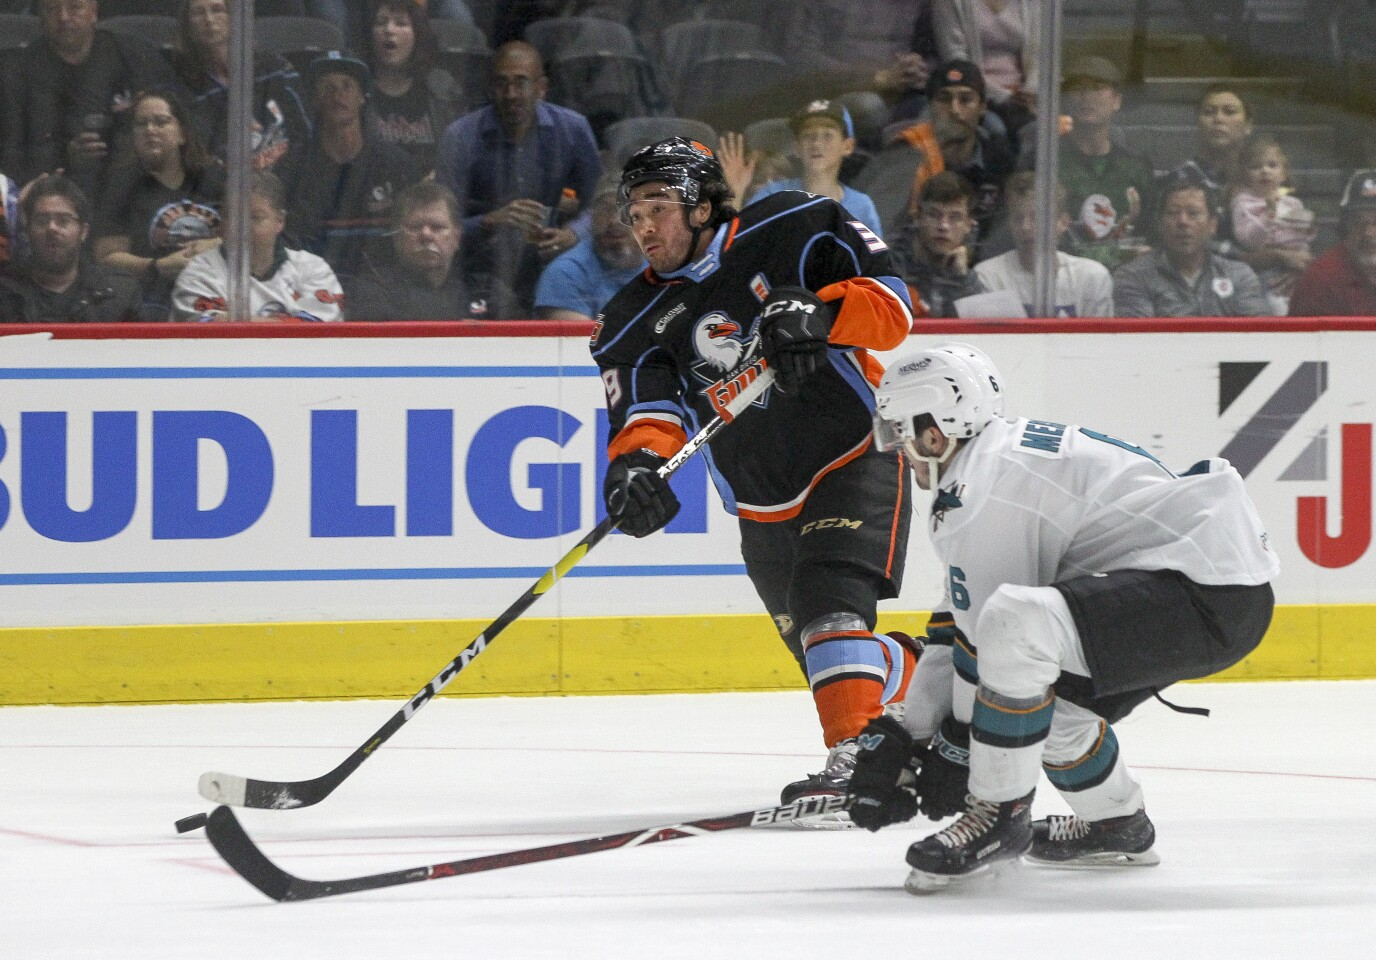 The Gulls' Kiefer Sherwood, left, shoots the puck to score a goal as San Jose's Ryan Merkley defends during the first period.